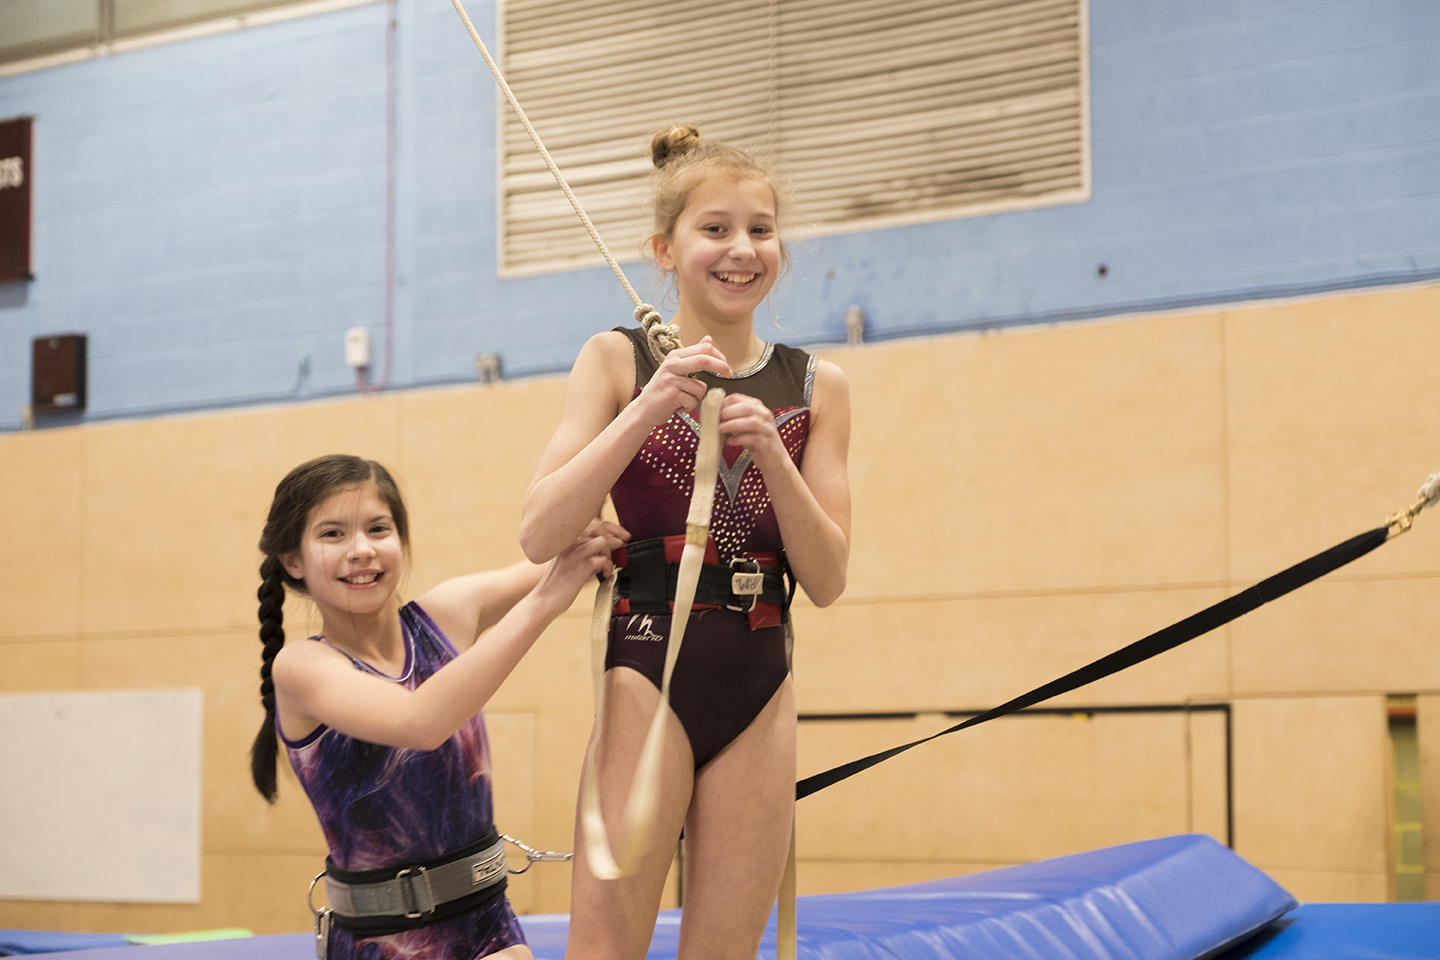 girls organising trampoline safety equipment. Trampoline courses for all. trampoline club.